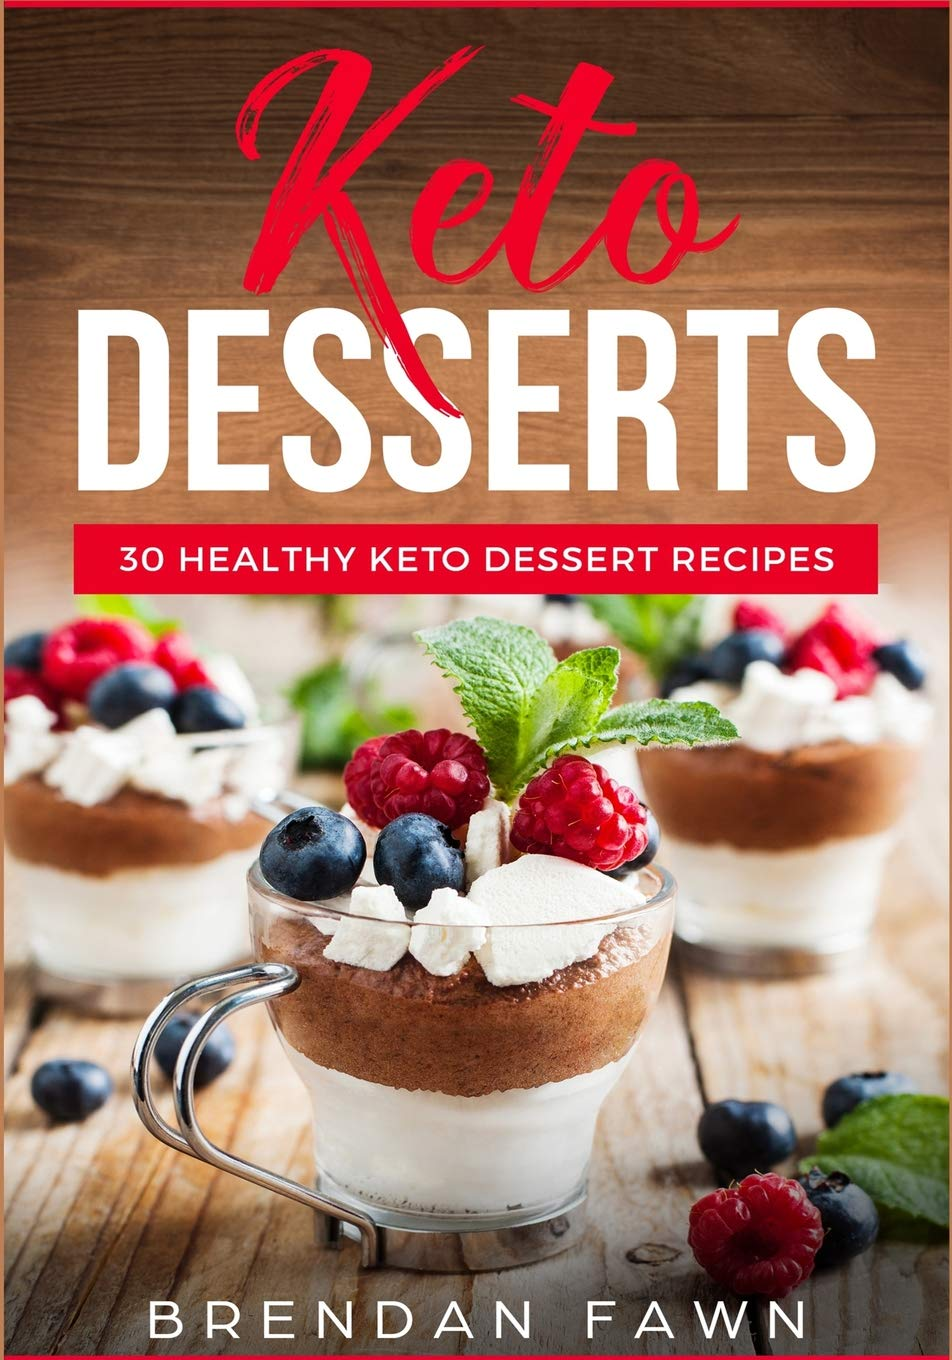 Buy Keto Sweets Keto-Friendly Dessert Recipes  Trade In Value